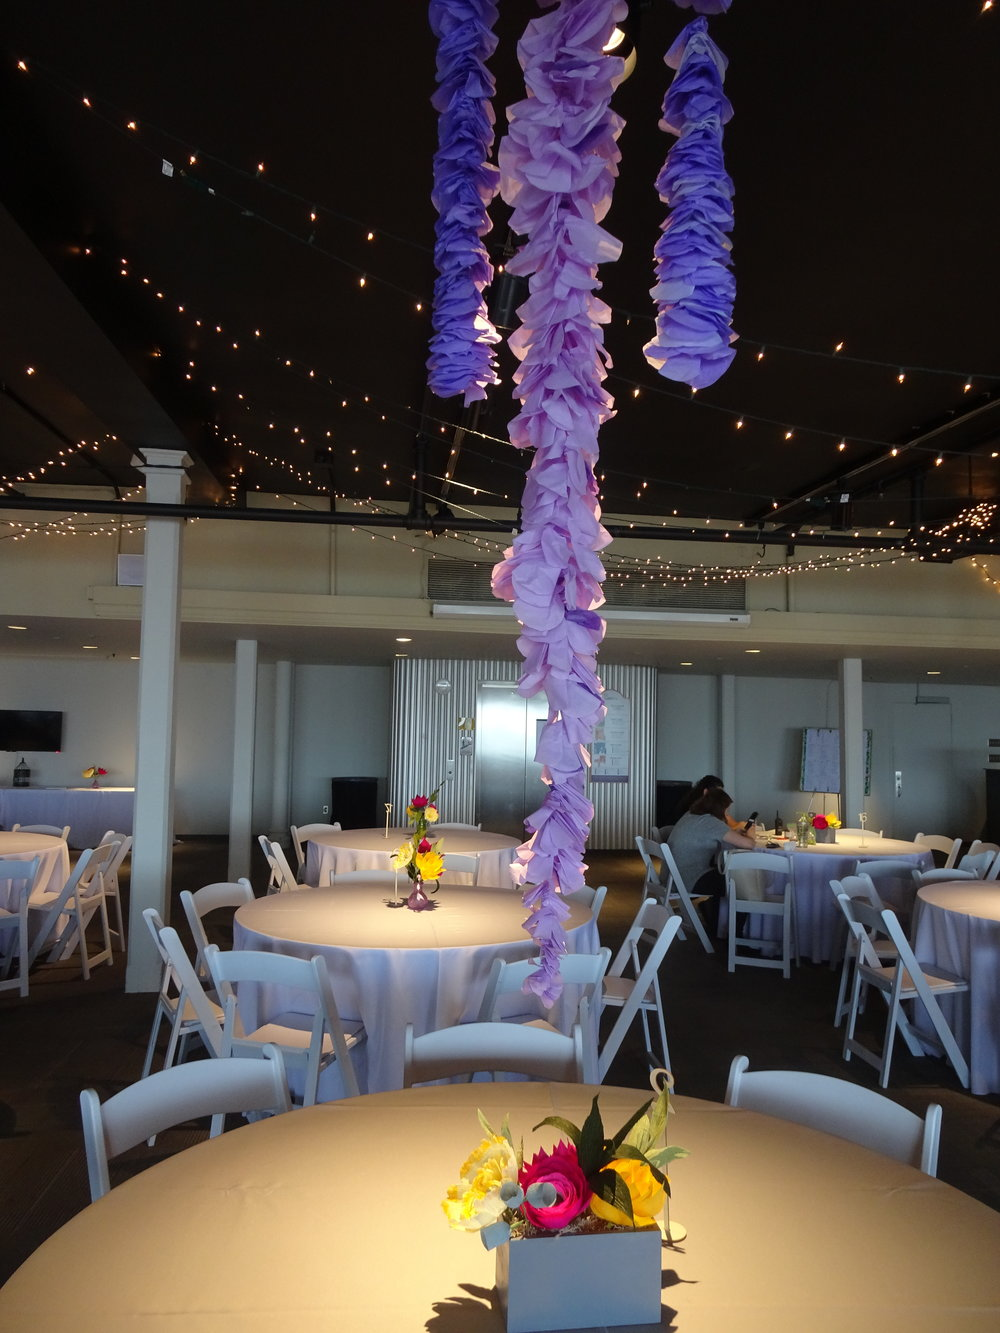 Bridal Table Centerpieces and Wisteria